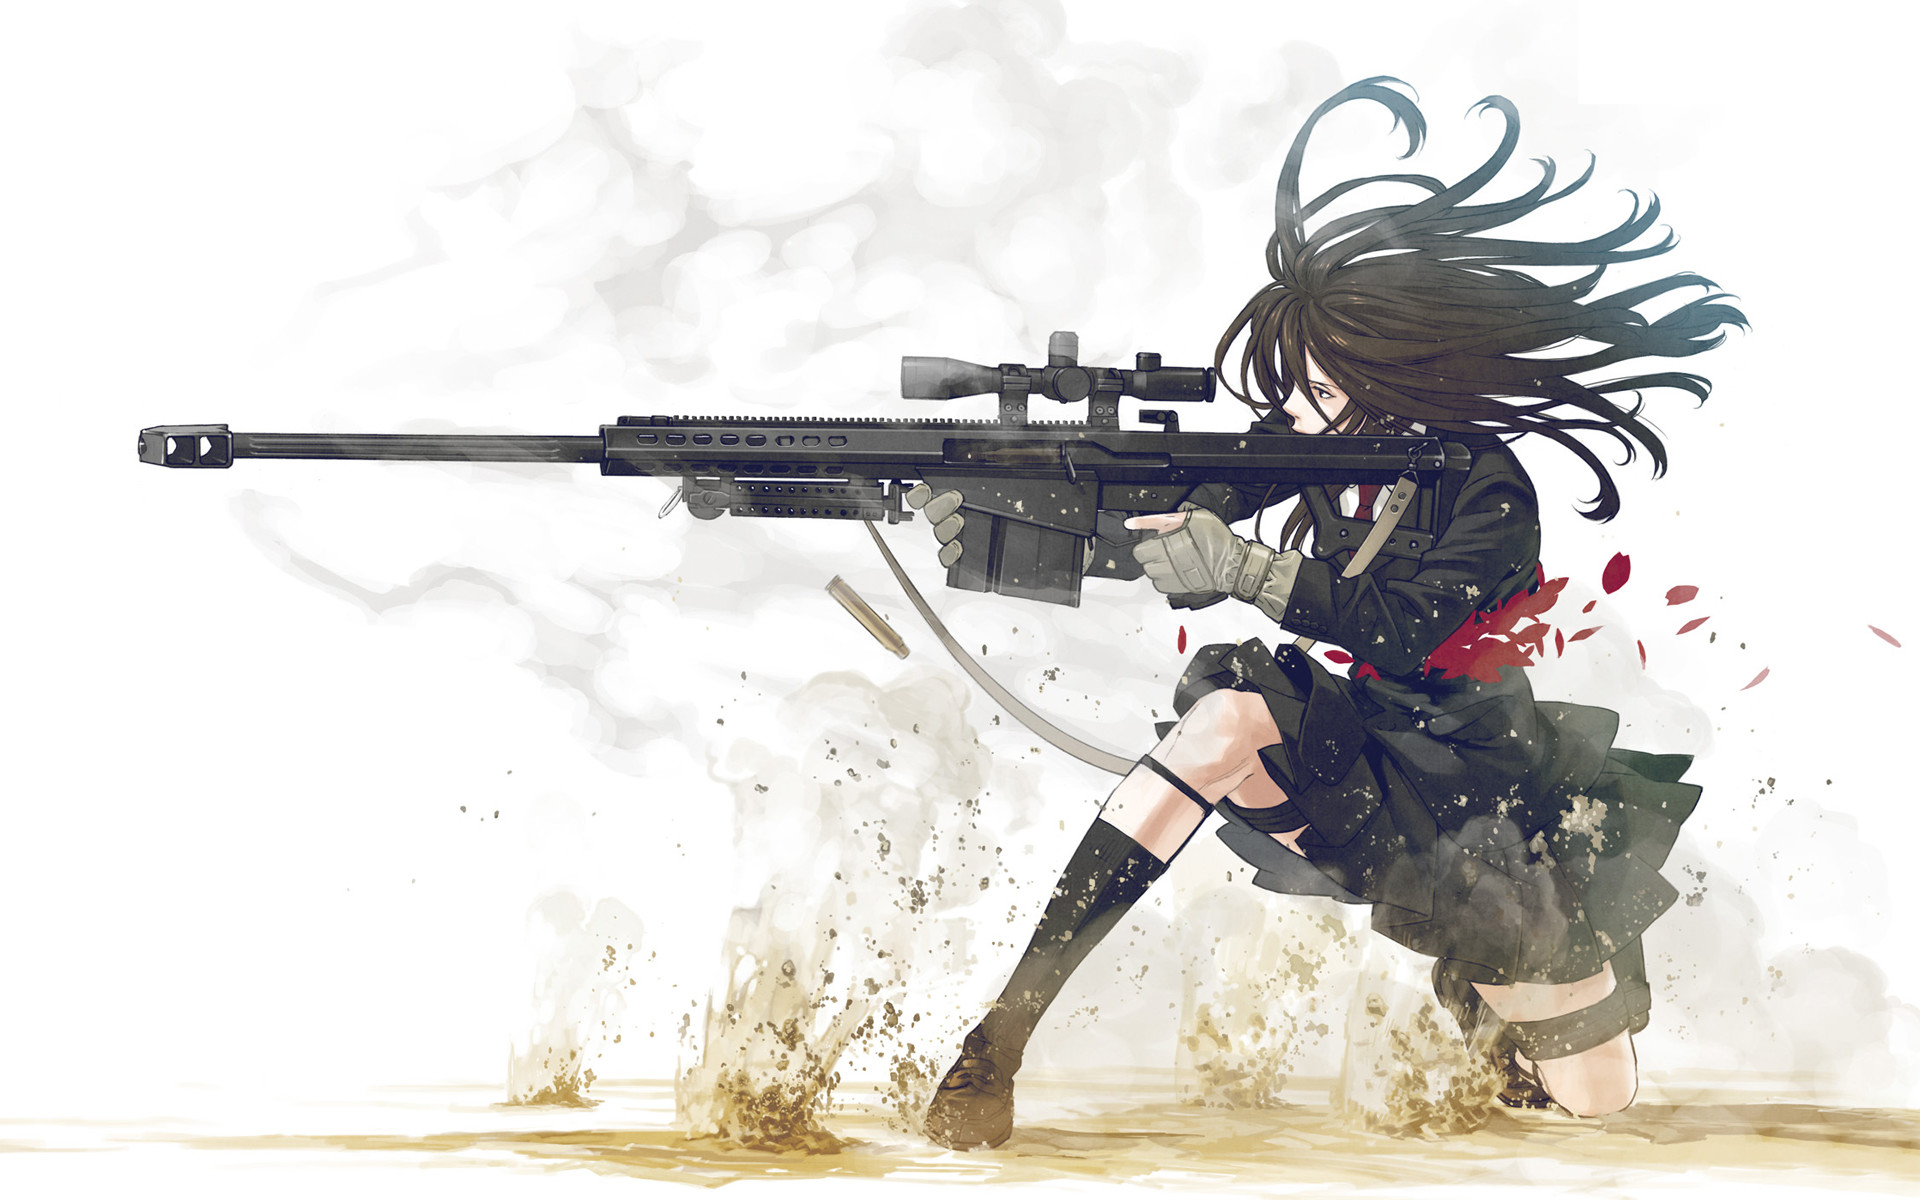 … Girl with a sniper rifle